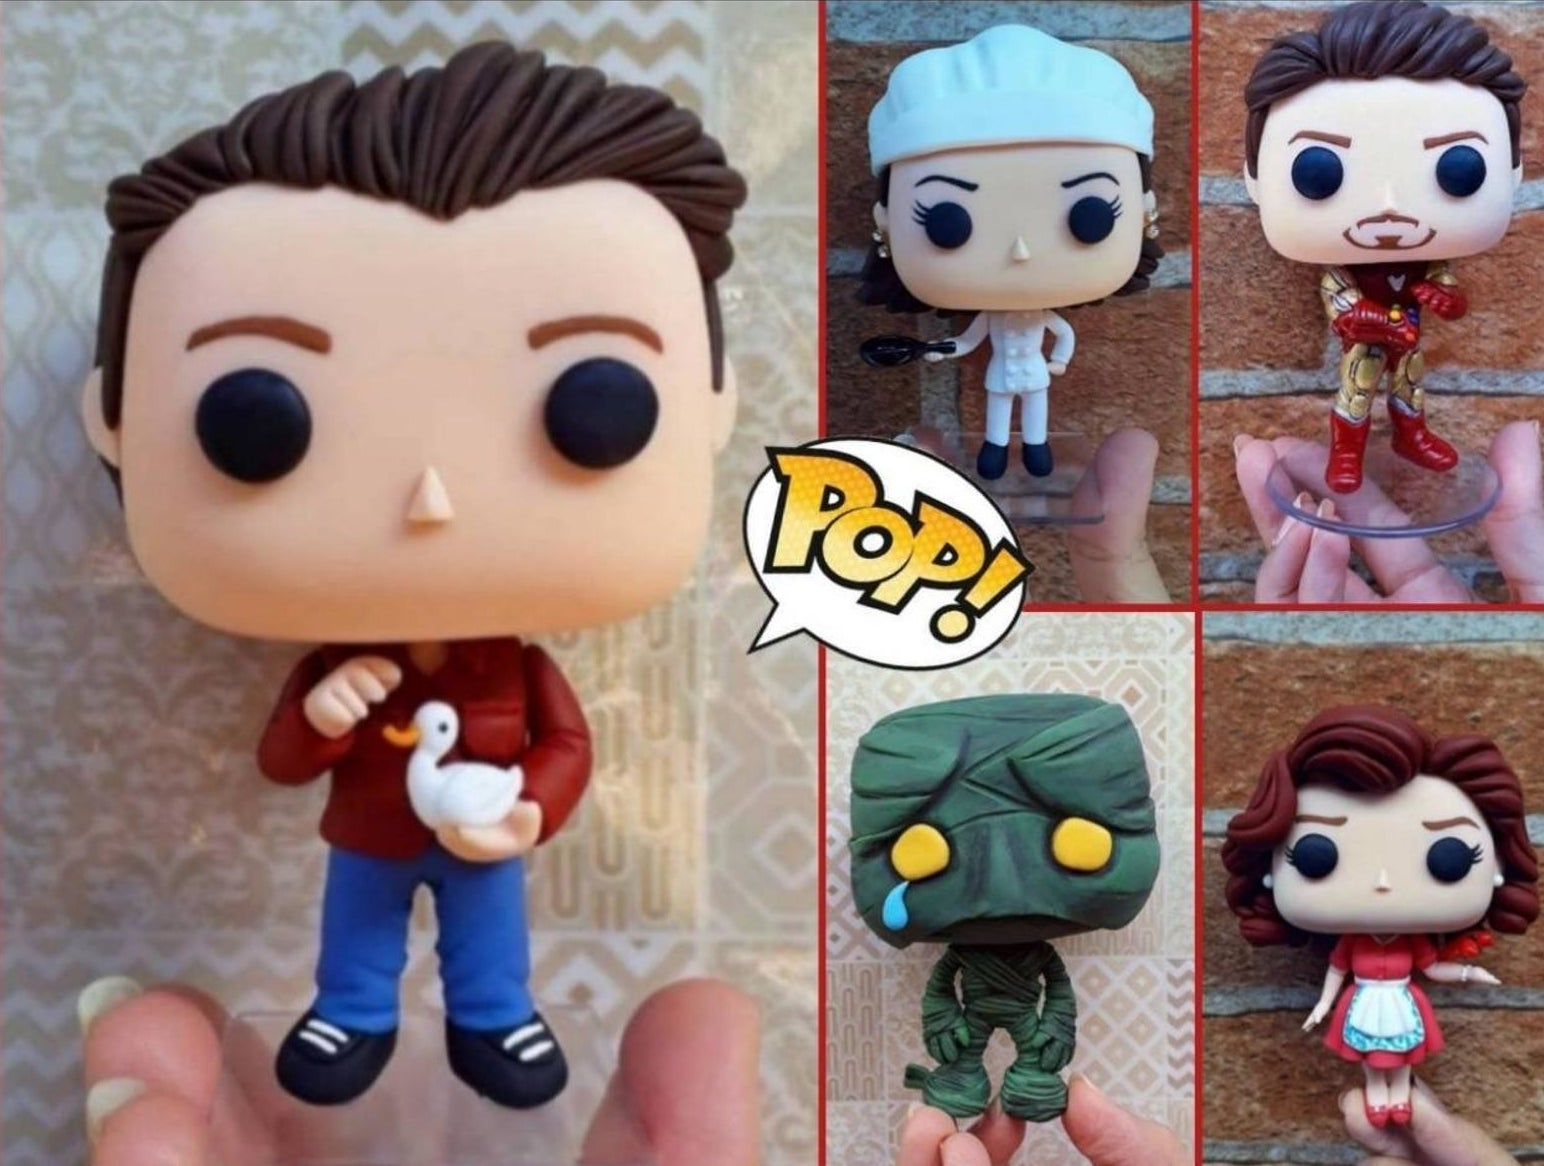 Five Funko Pops of different styles